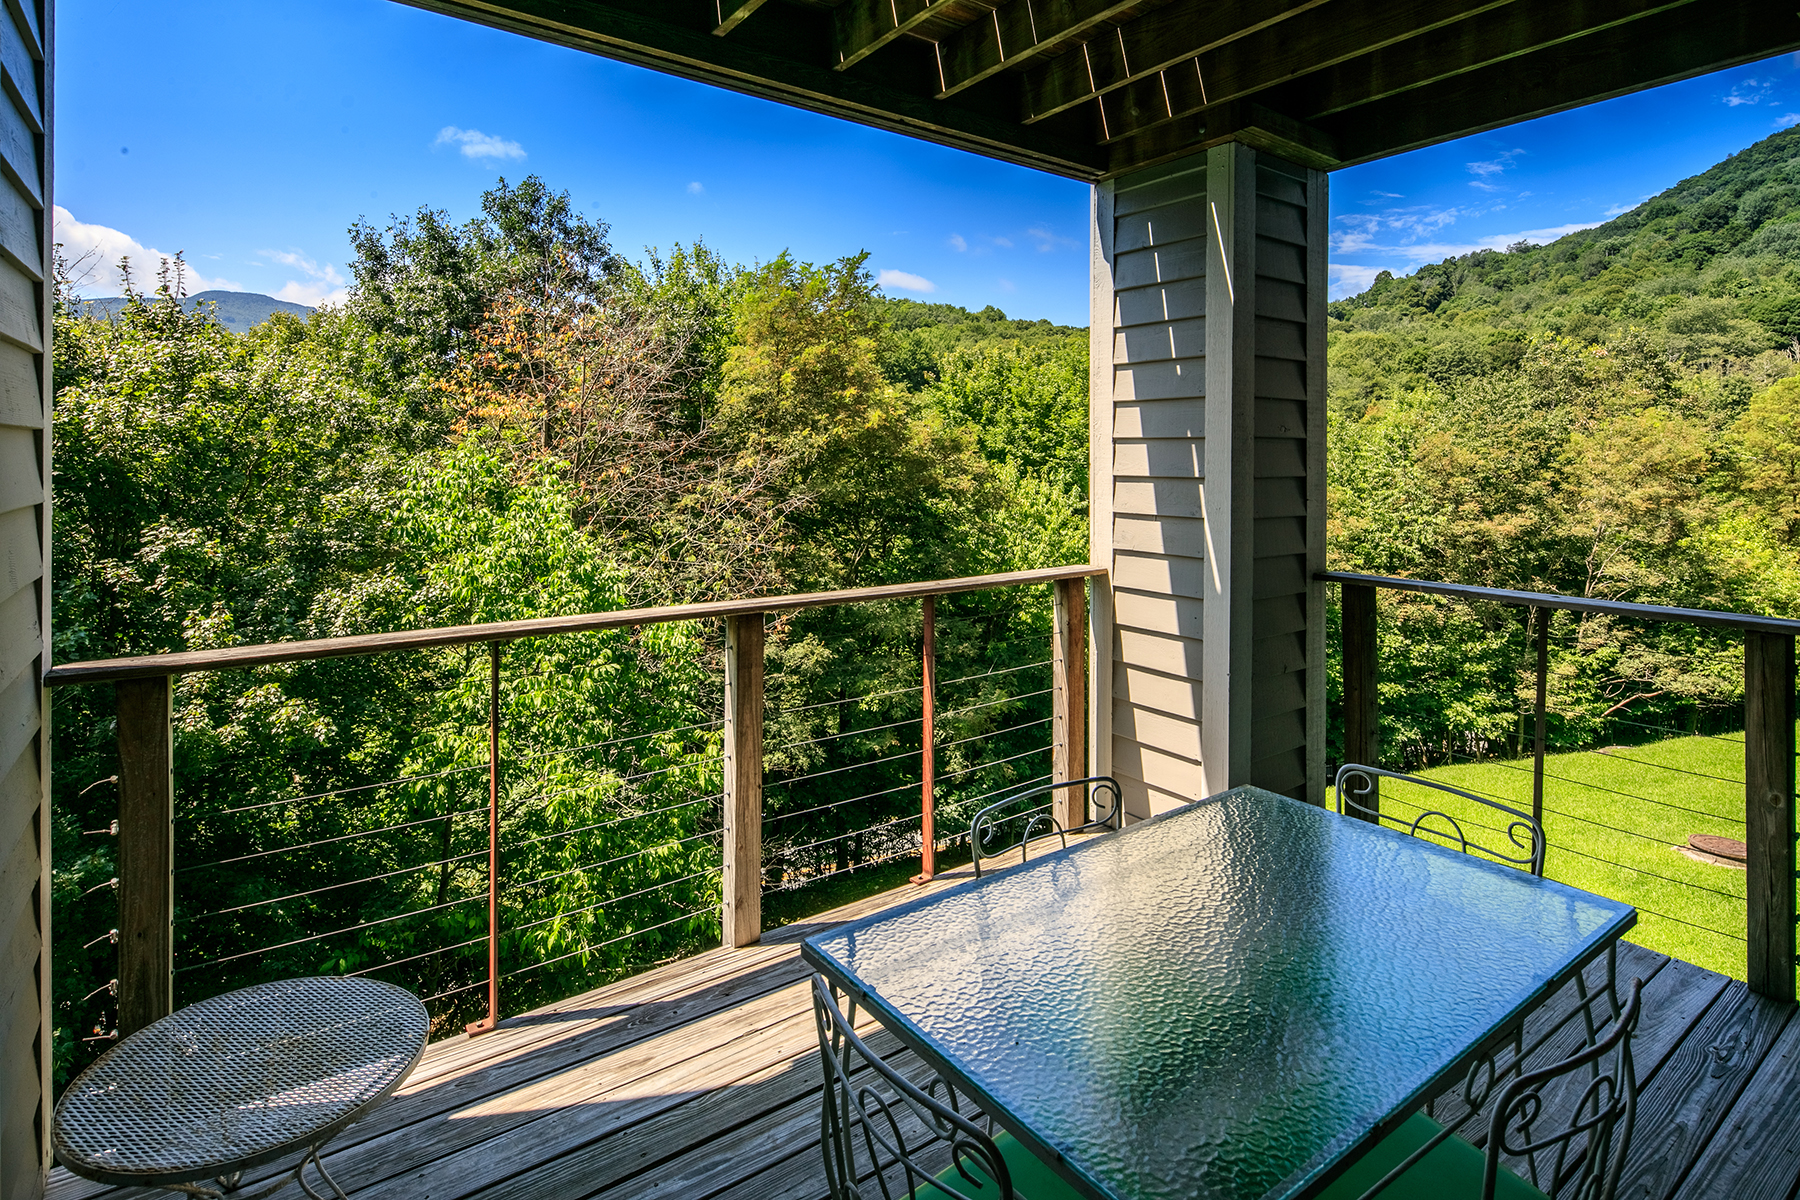 Single Family Homes for Sale at SEVEN DEVILS - HAWKS PEAK 143 Hawks Peak Ln , 112 Seven Devils, North Carolina 28604 United States